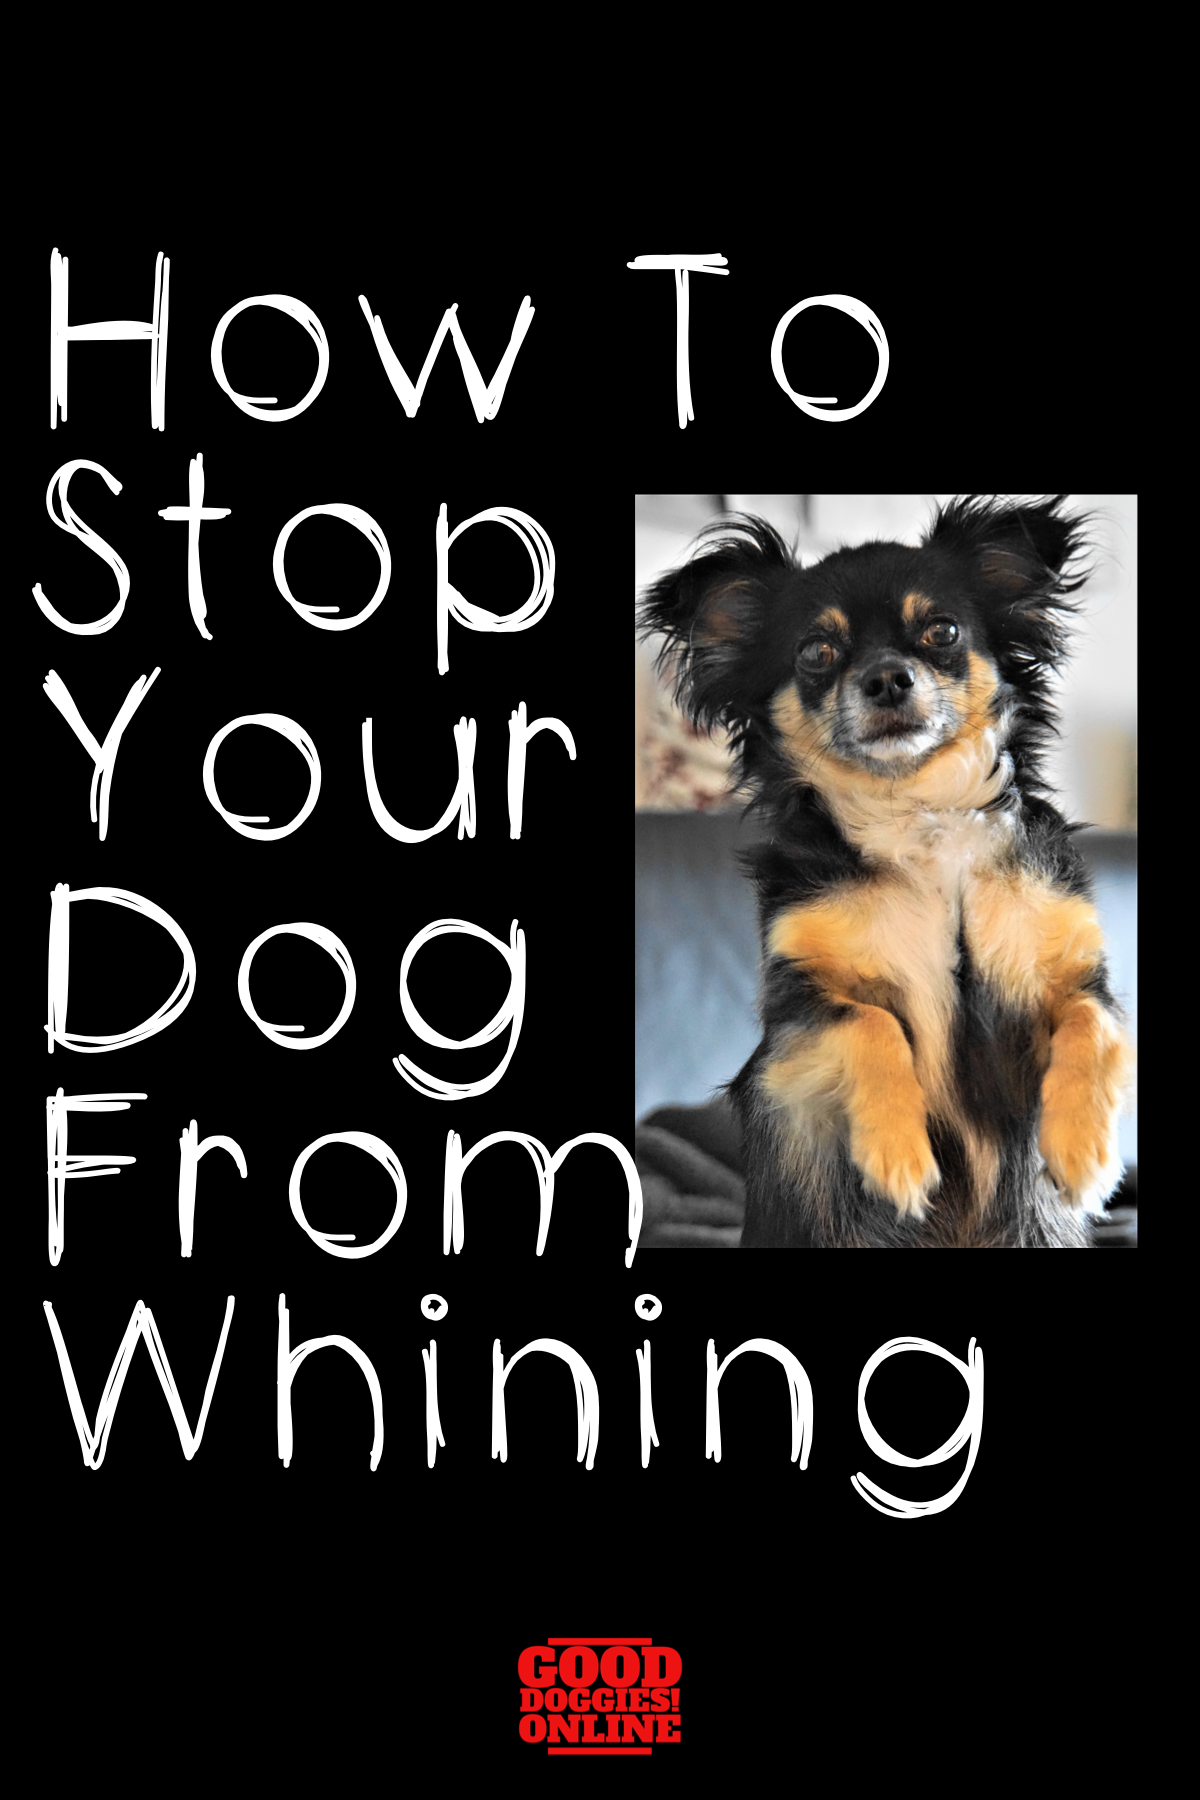 How To Stop Your Dog From Whining (With images) Dog